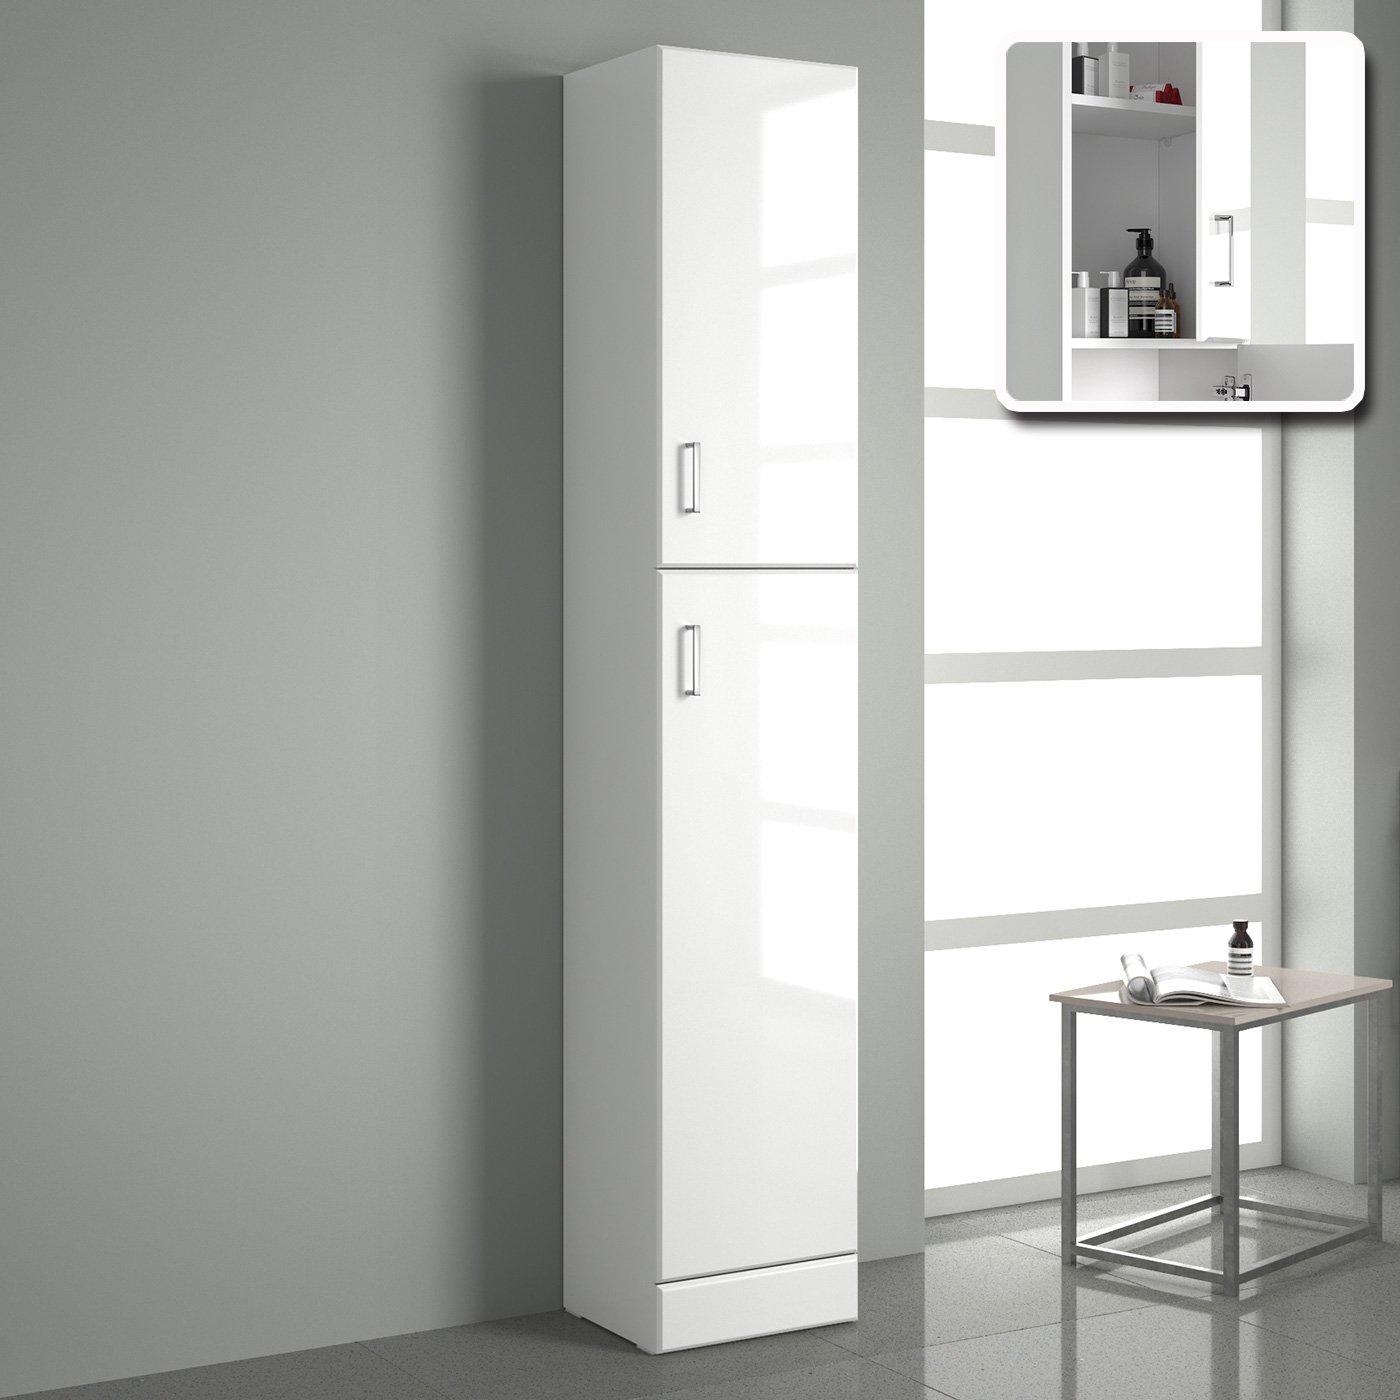 1900mm Tall Gloss White Bathroom Cupboard Reversible